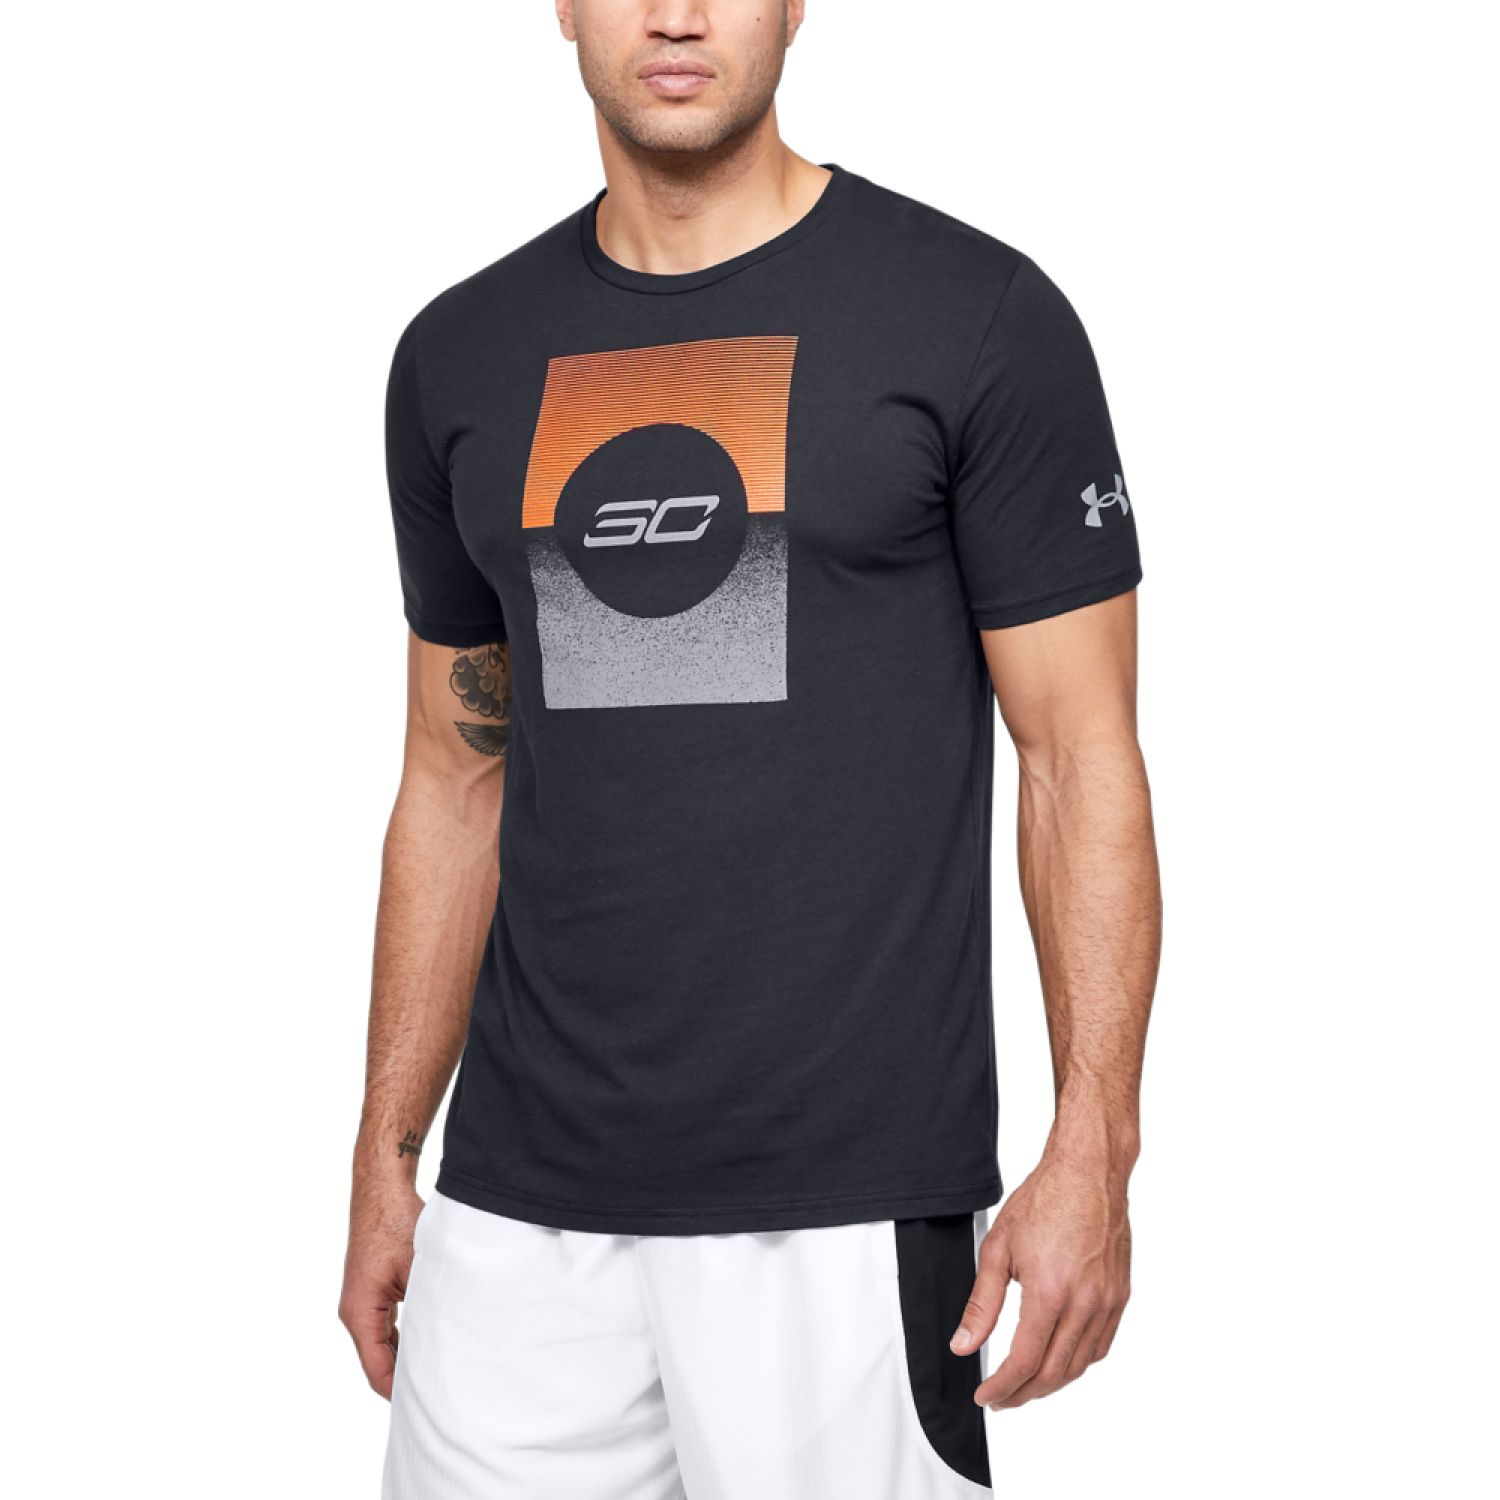 Under Armour Sc30 Gradient Graphic Tee Negro Camisetas y Polos Deportivos